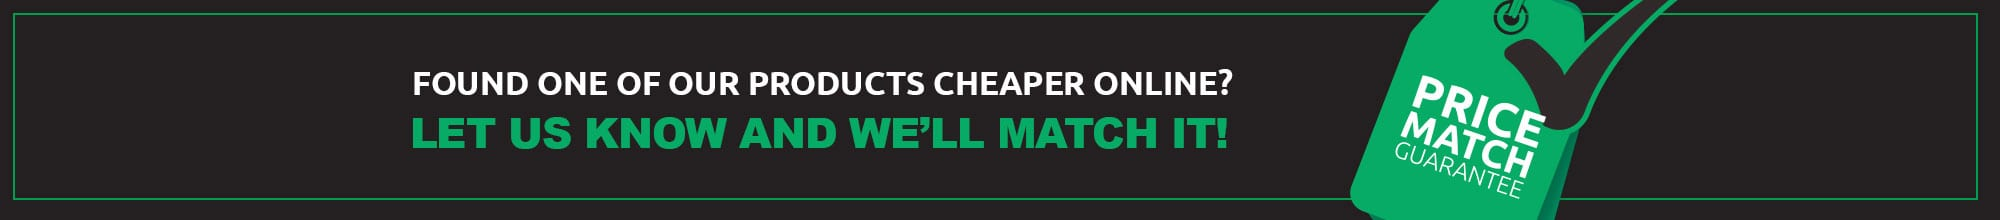 price-match-banner-NEW